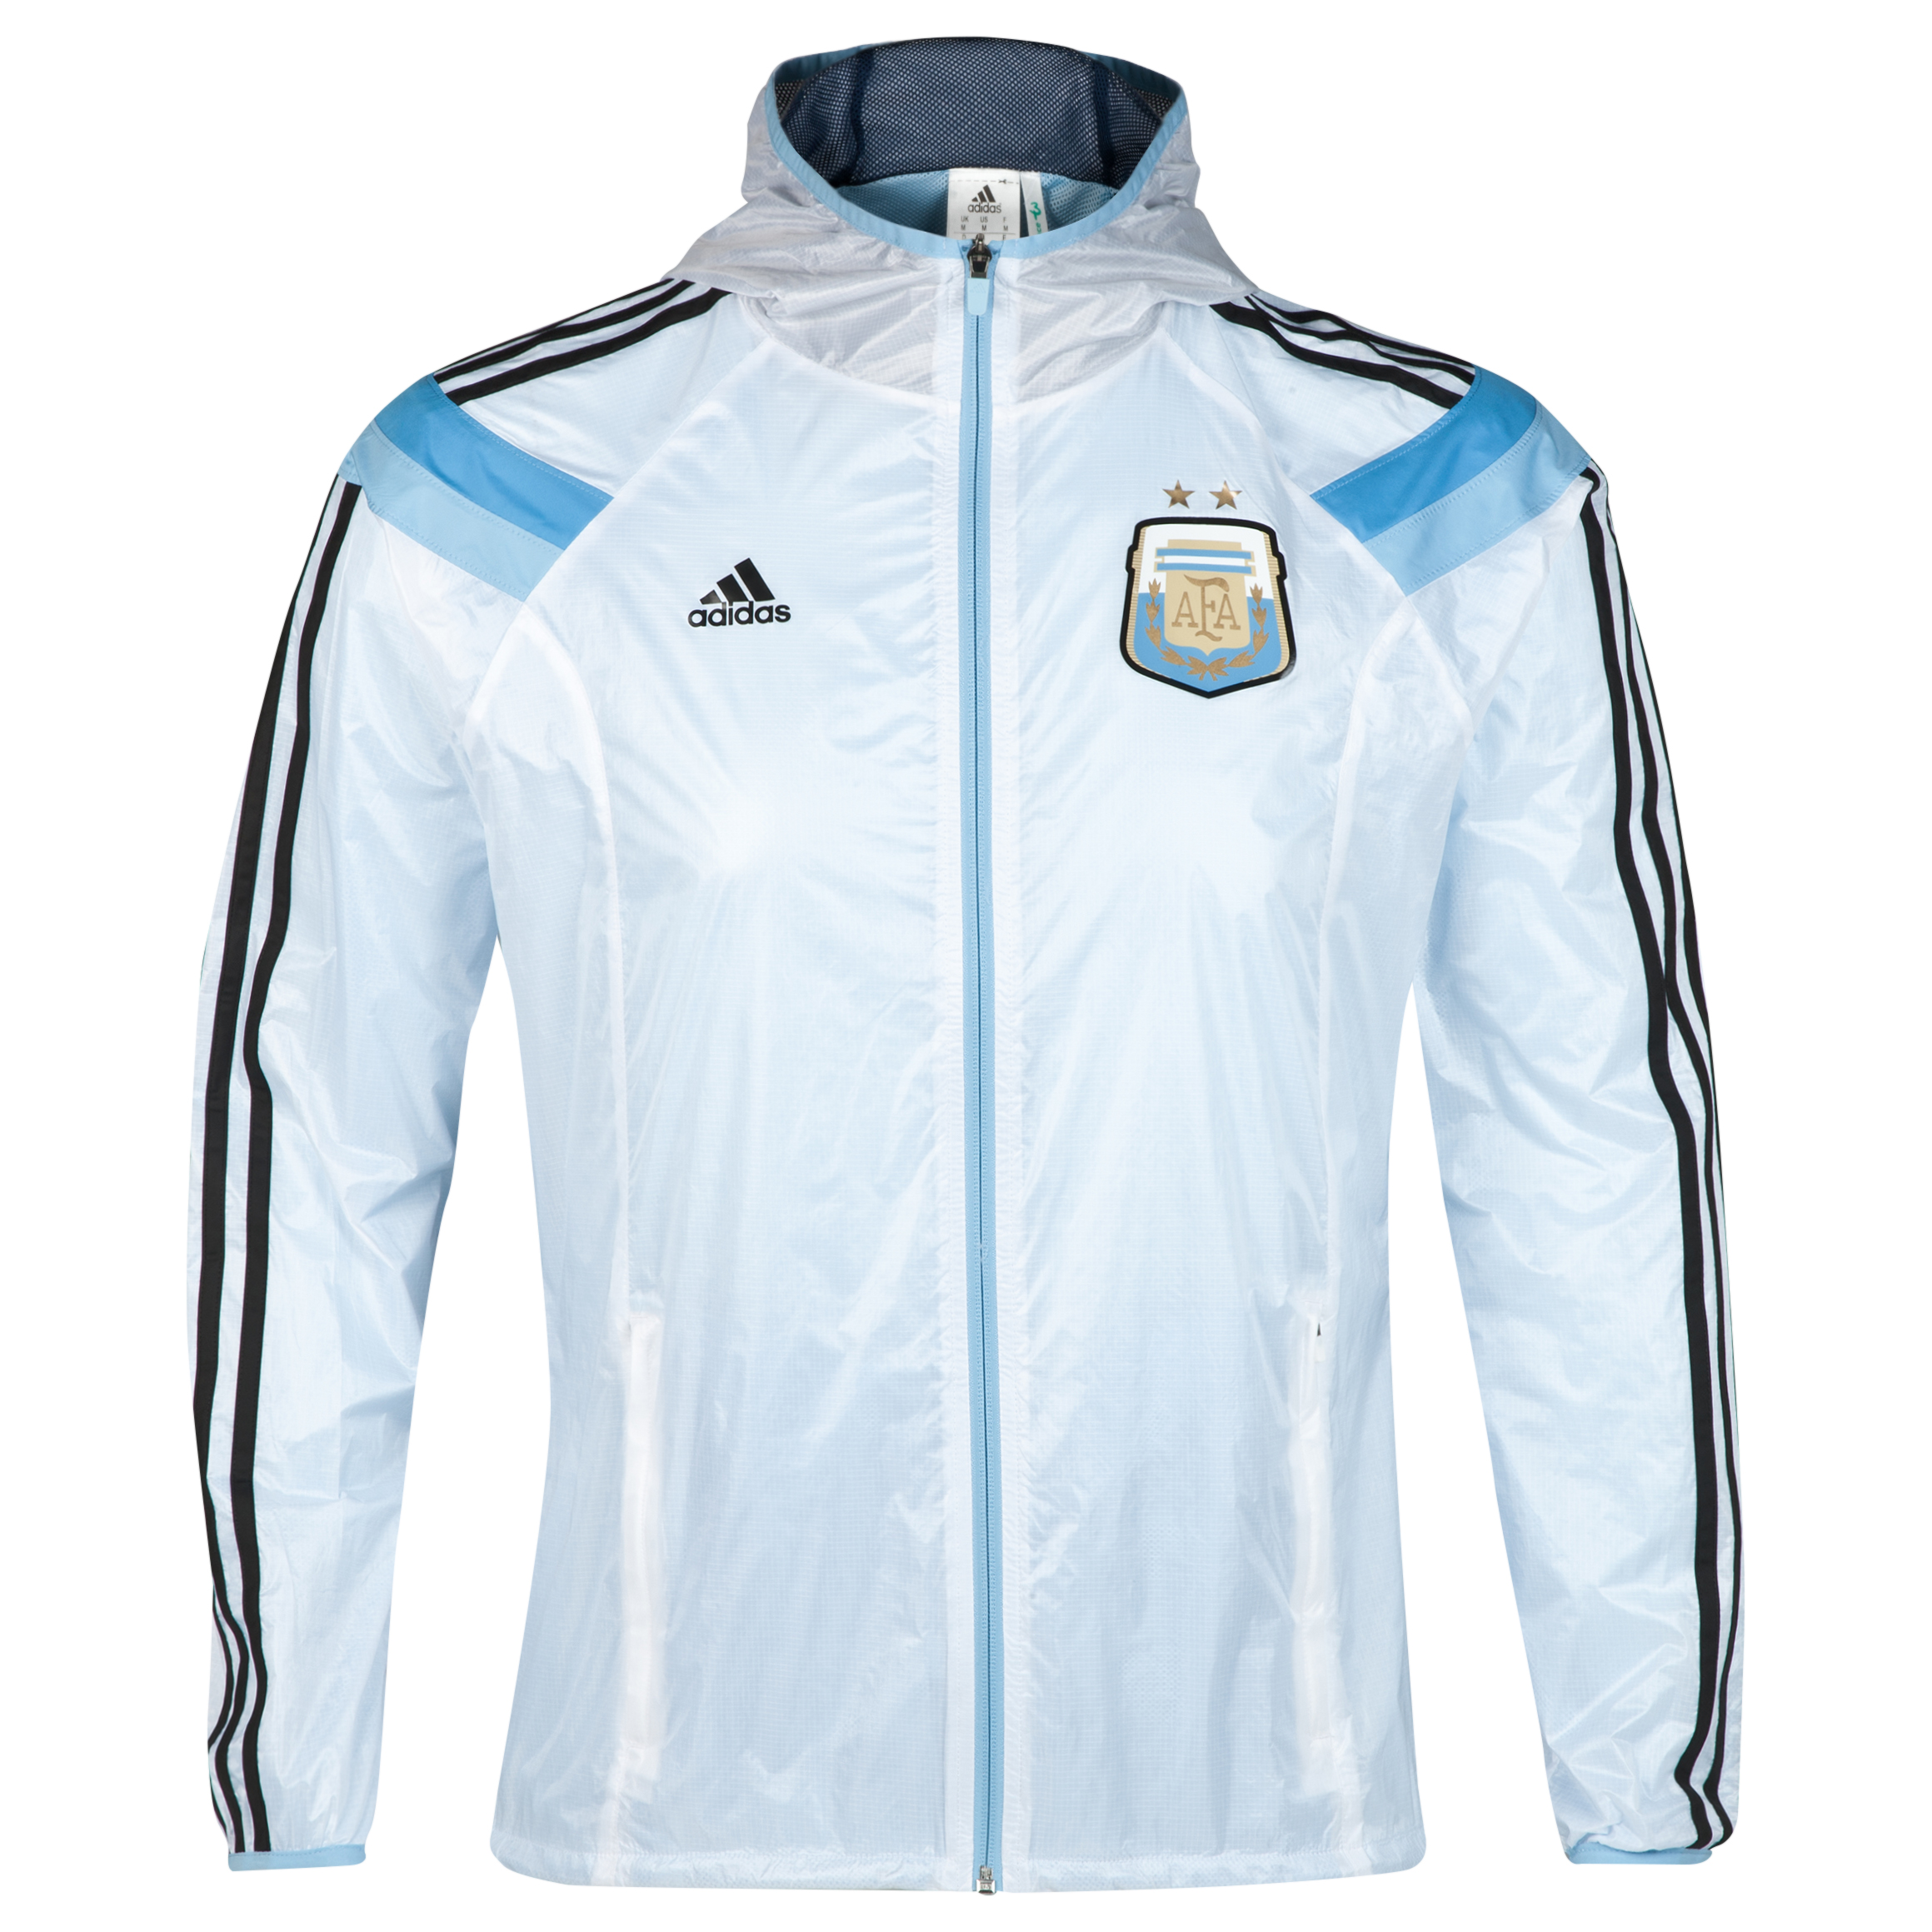 Argentina Anthem Jacket - White/Blue/Black White